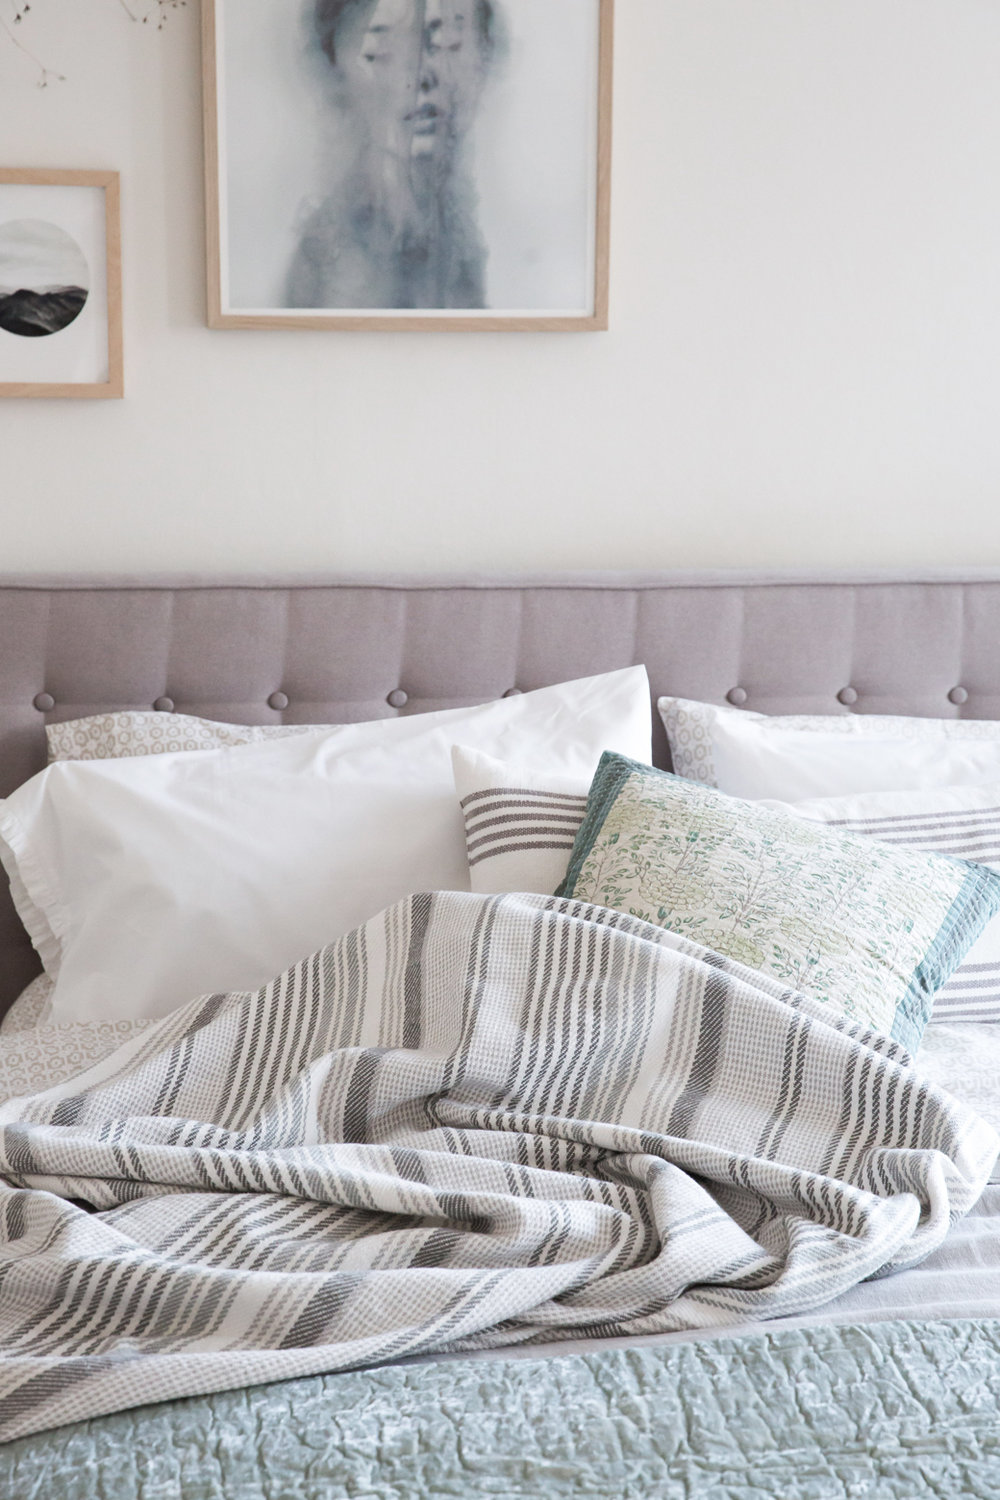 Great That is a decorating must have in a bedroom especially TEXTURE It us sensual and inviting Stacked near the right side of the bed you can see in